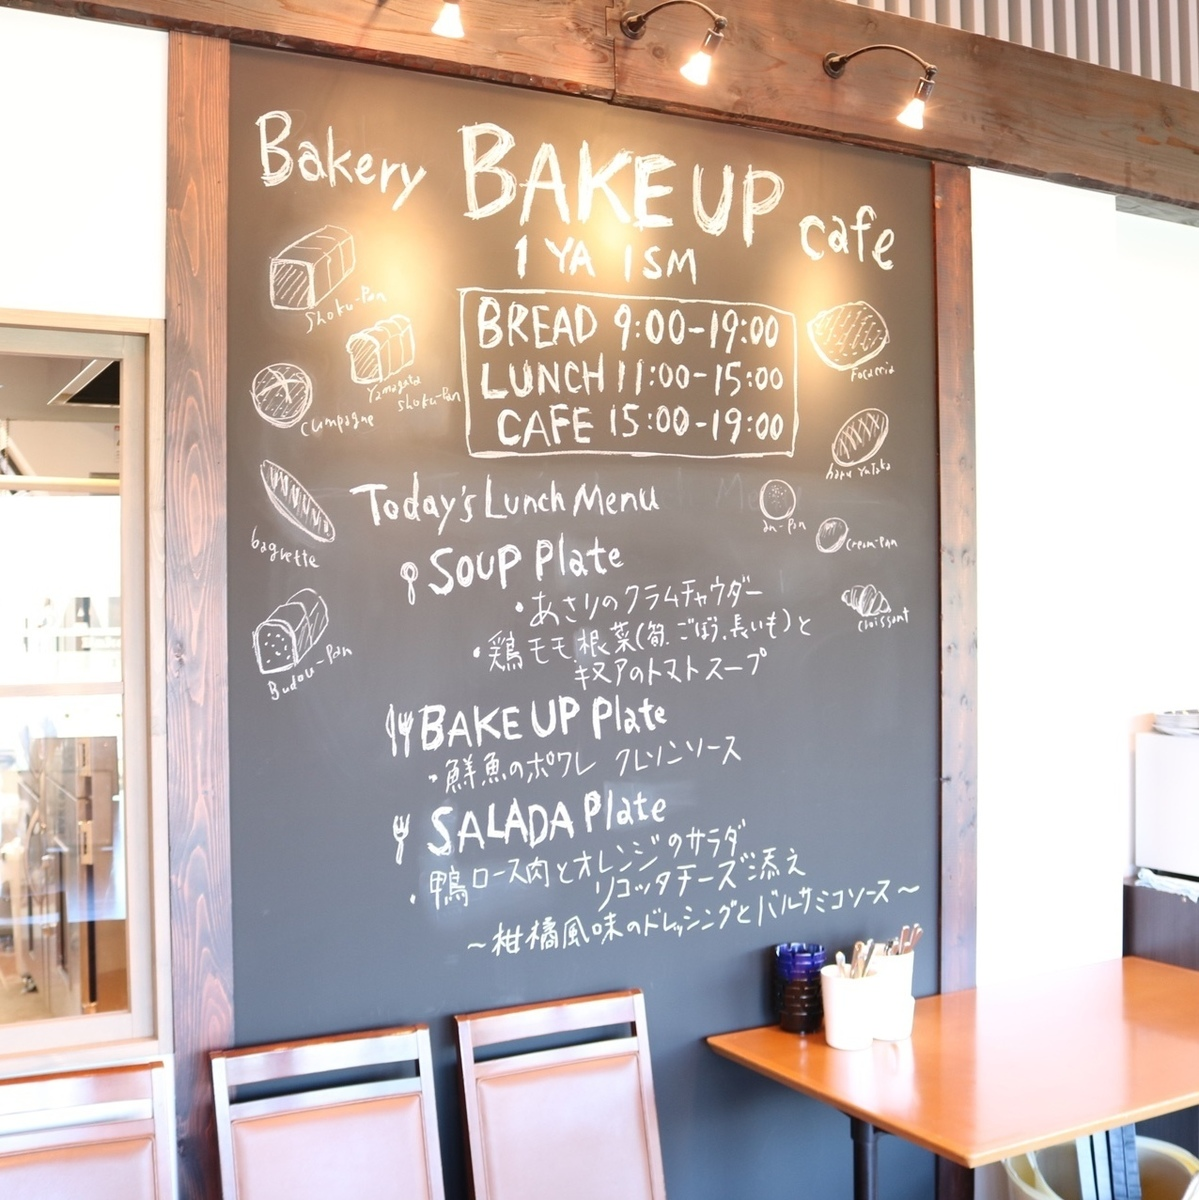 【Recommended lunch menu on the blackboard ... ♪】 You can see the recommended dishes of lunch.